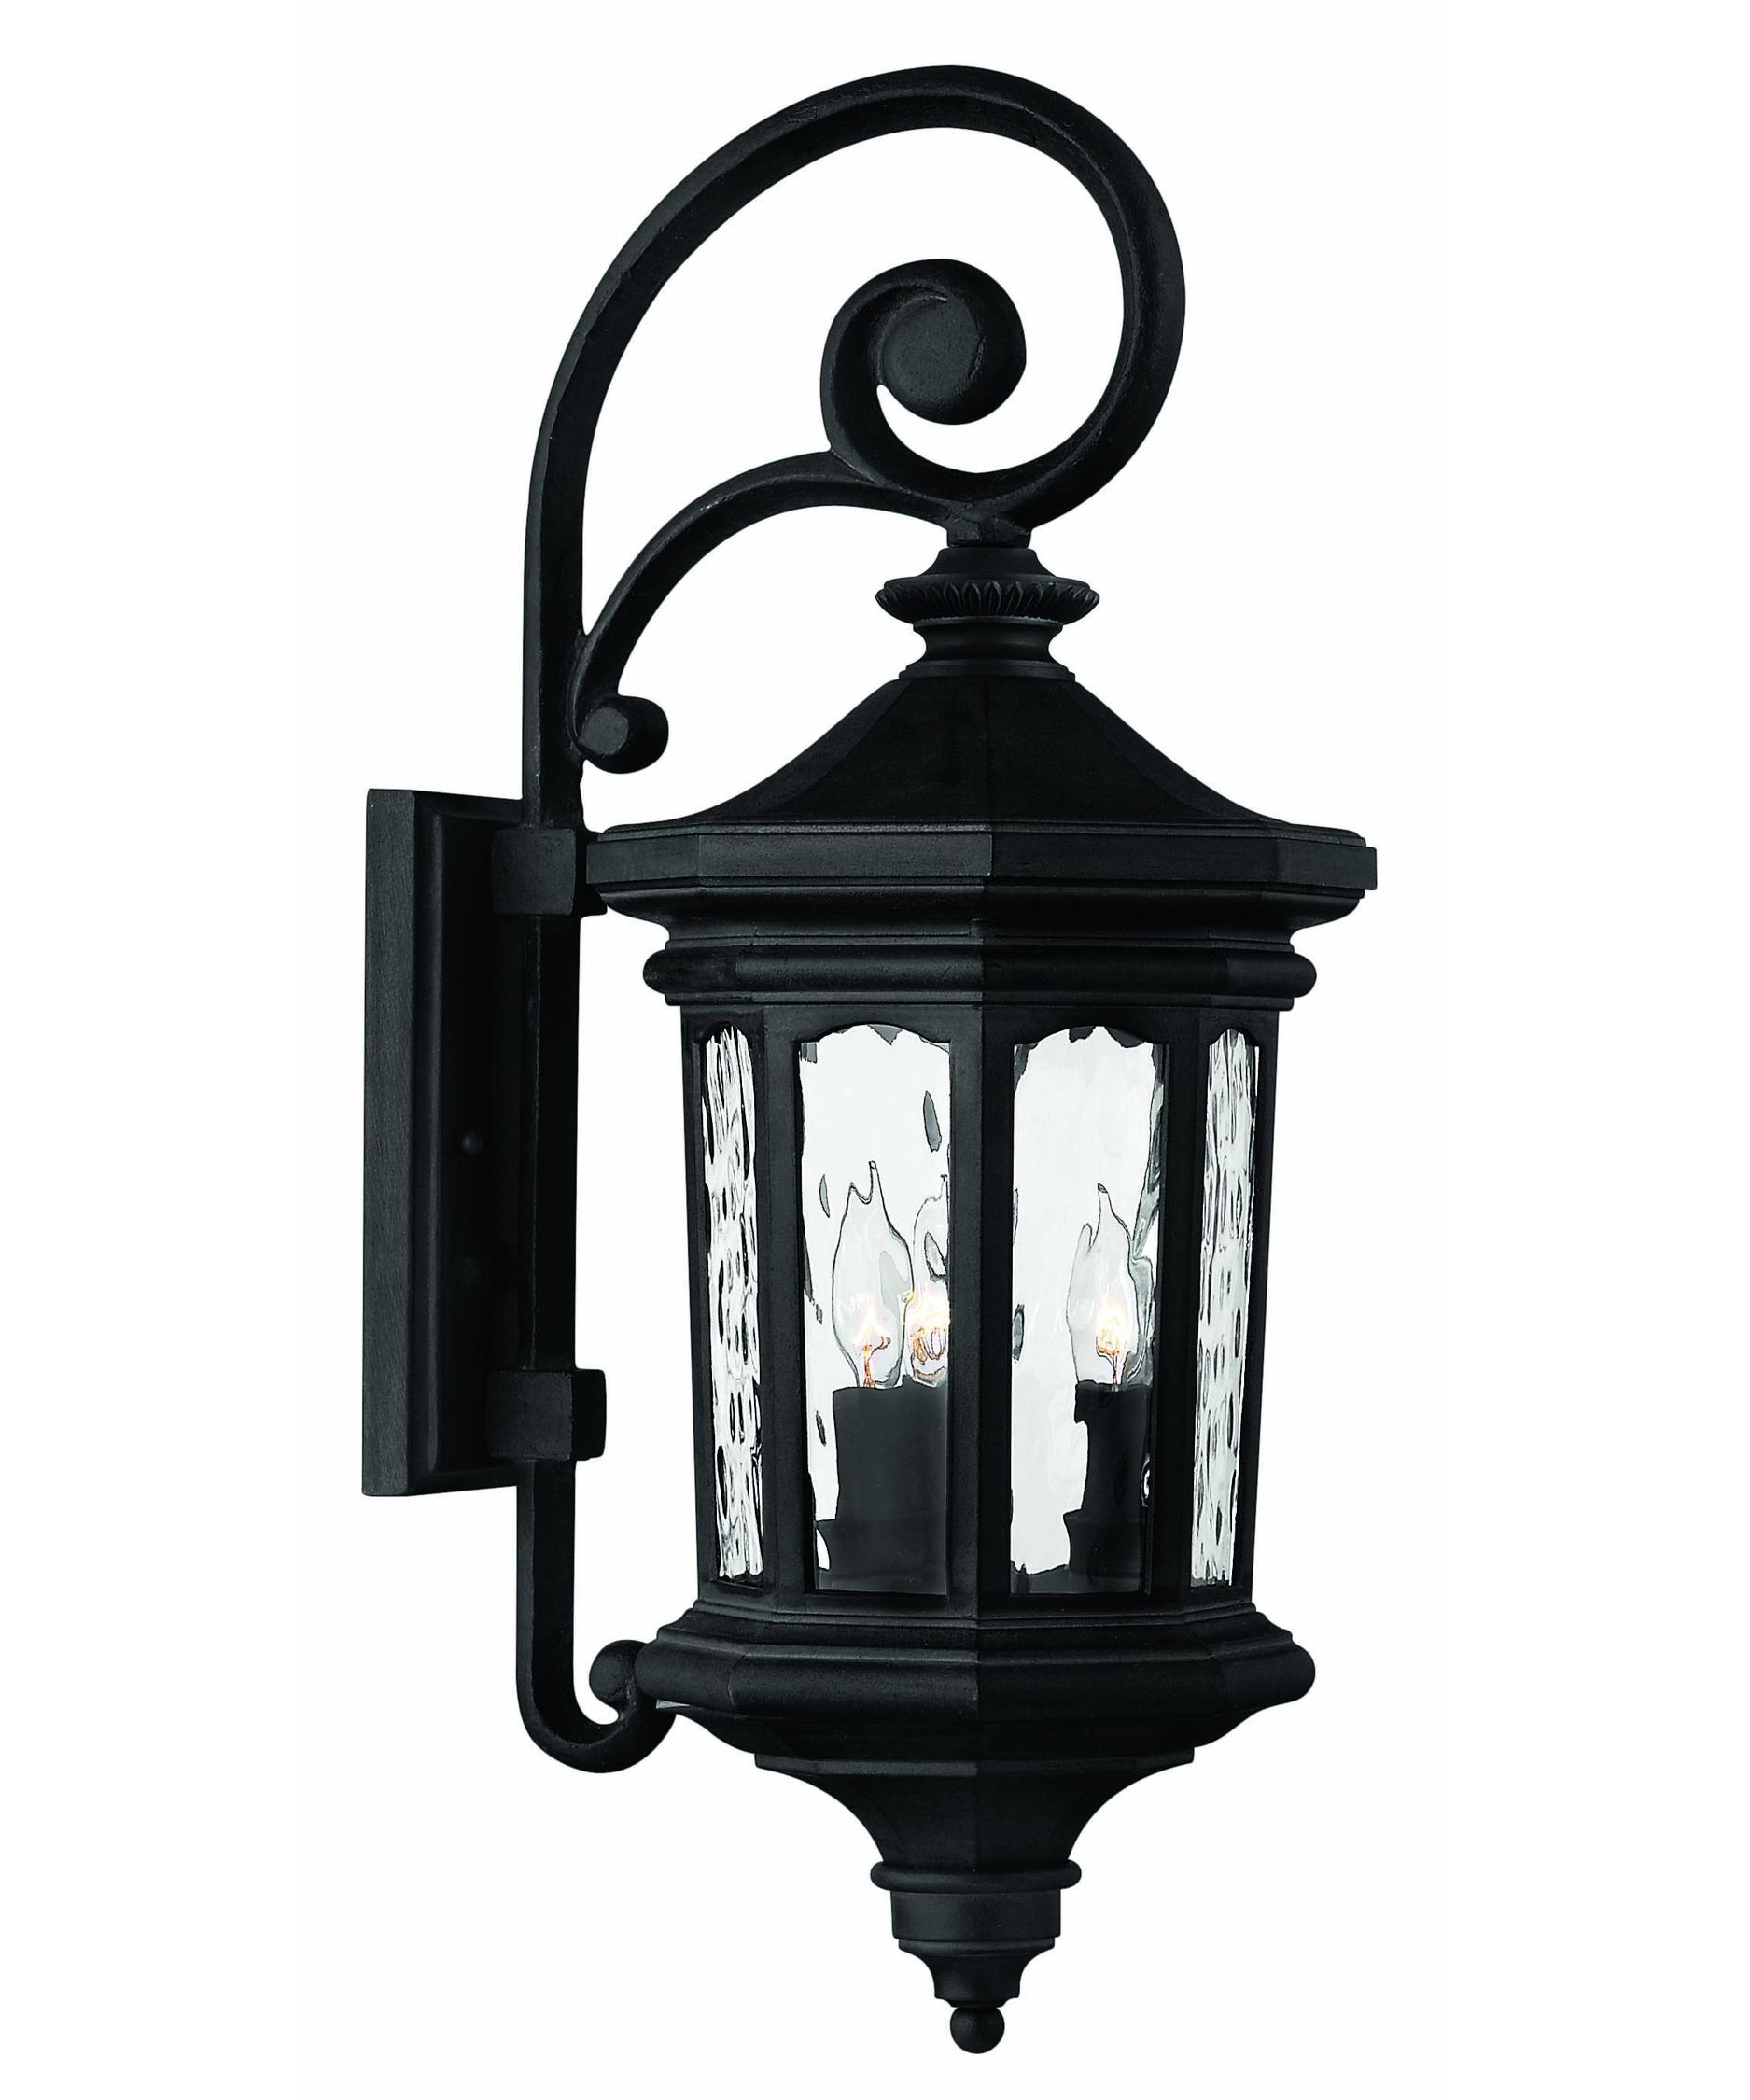 Hinkley Lighting 1604 Raley 10 Inch Wide 3 Light Outdoor Wall Light Intended For Favorite Traditional Outdoor Wall Lighting (View 9 of 20)